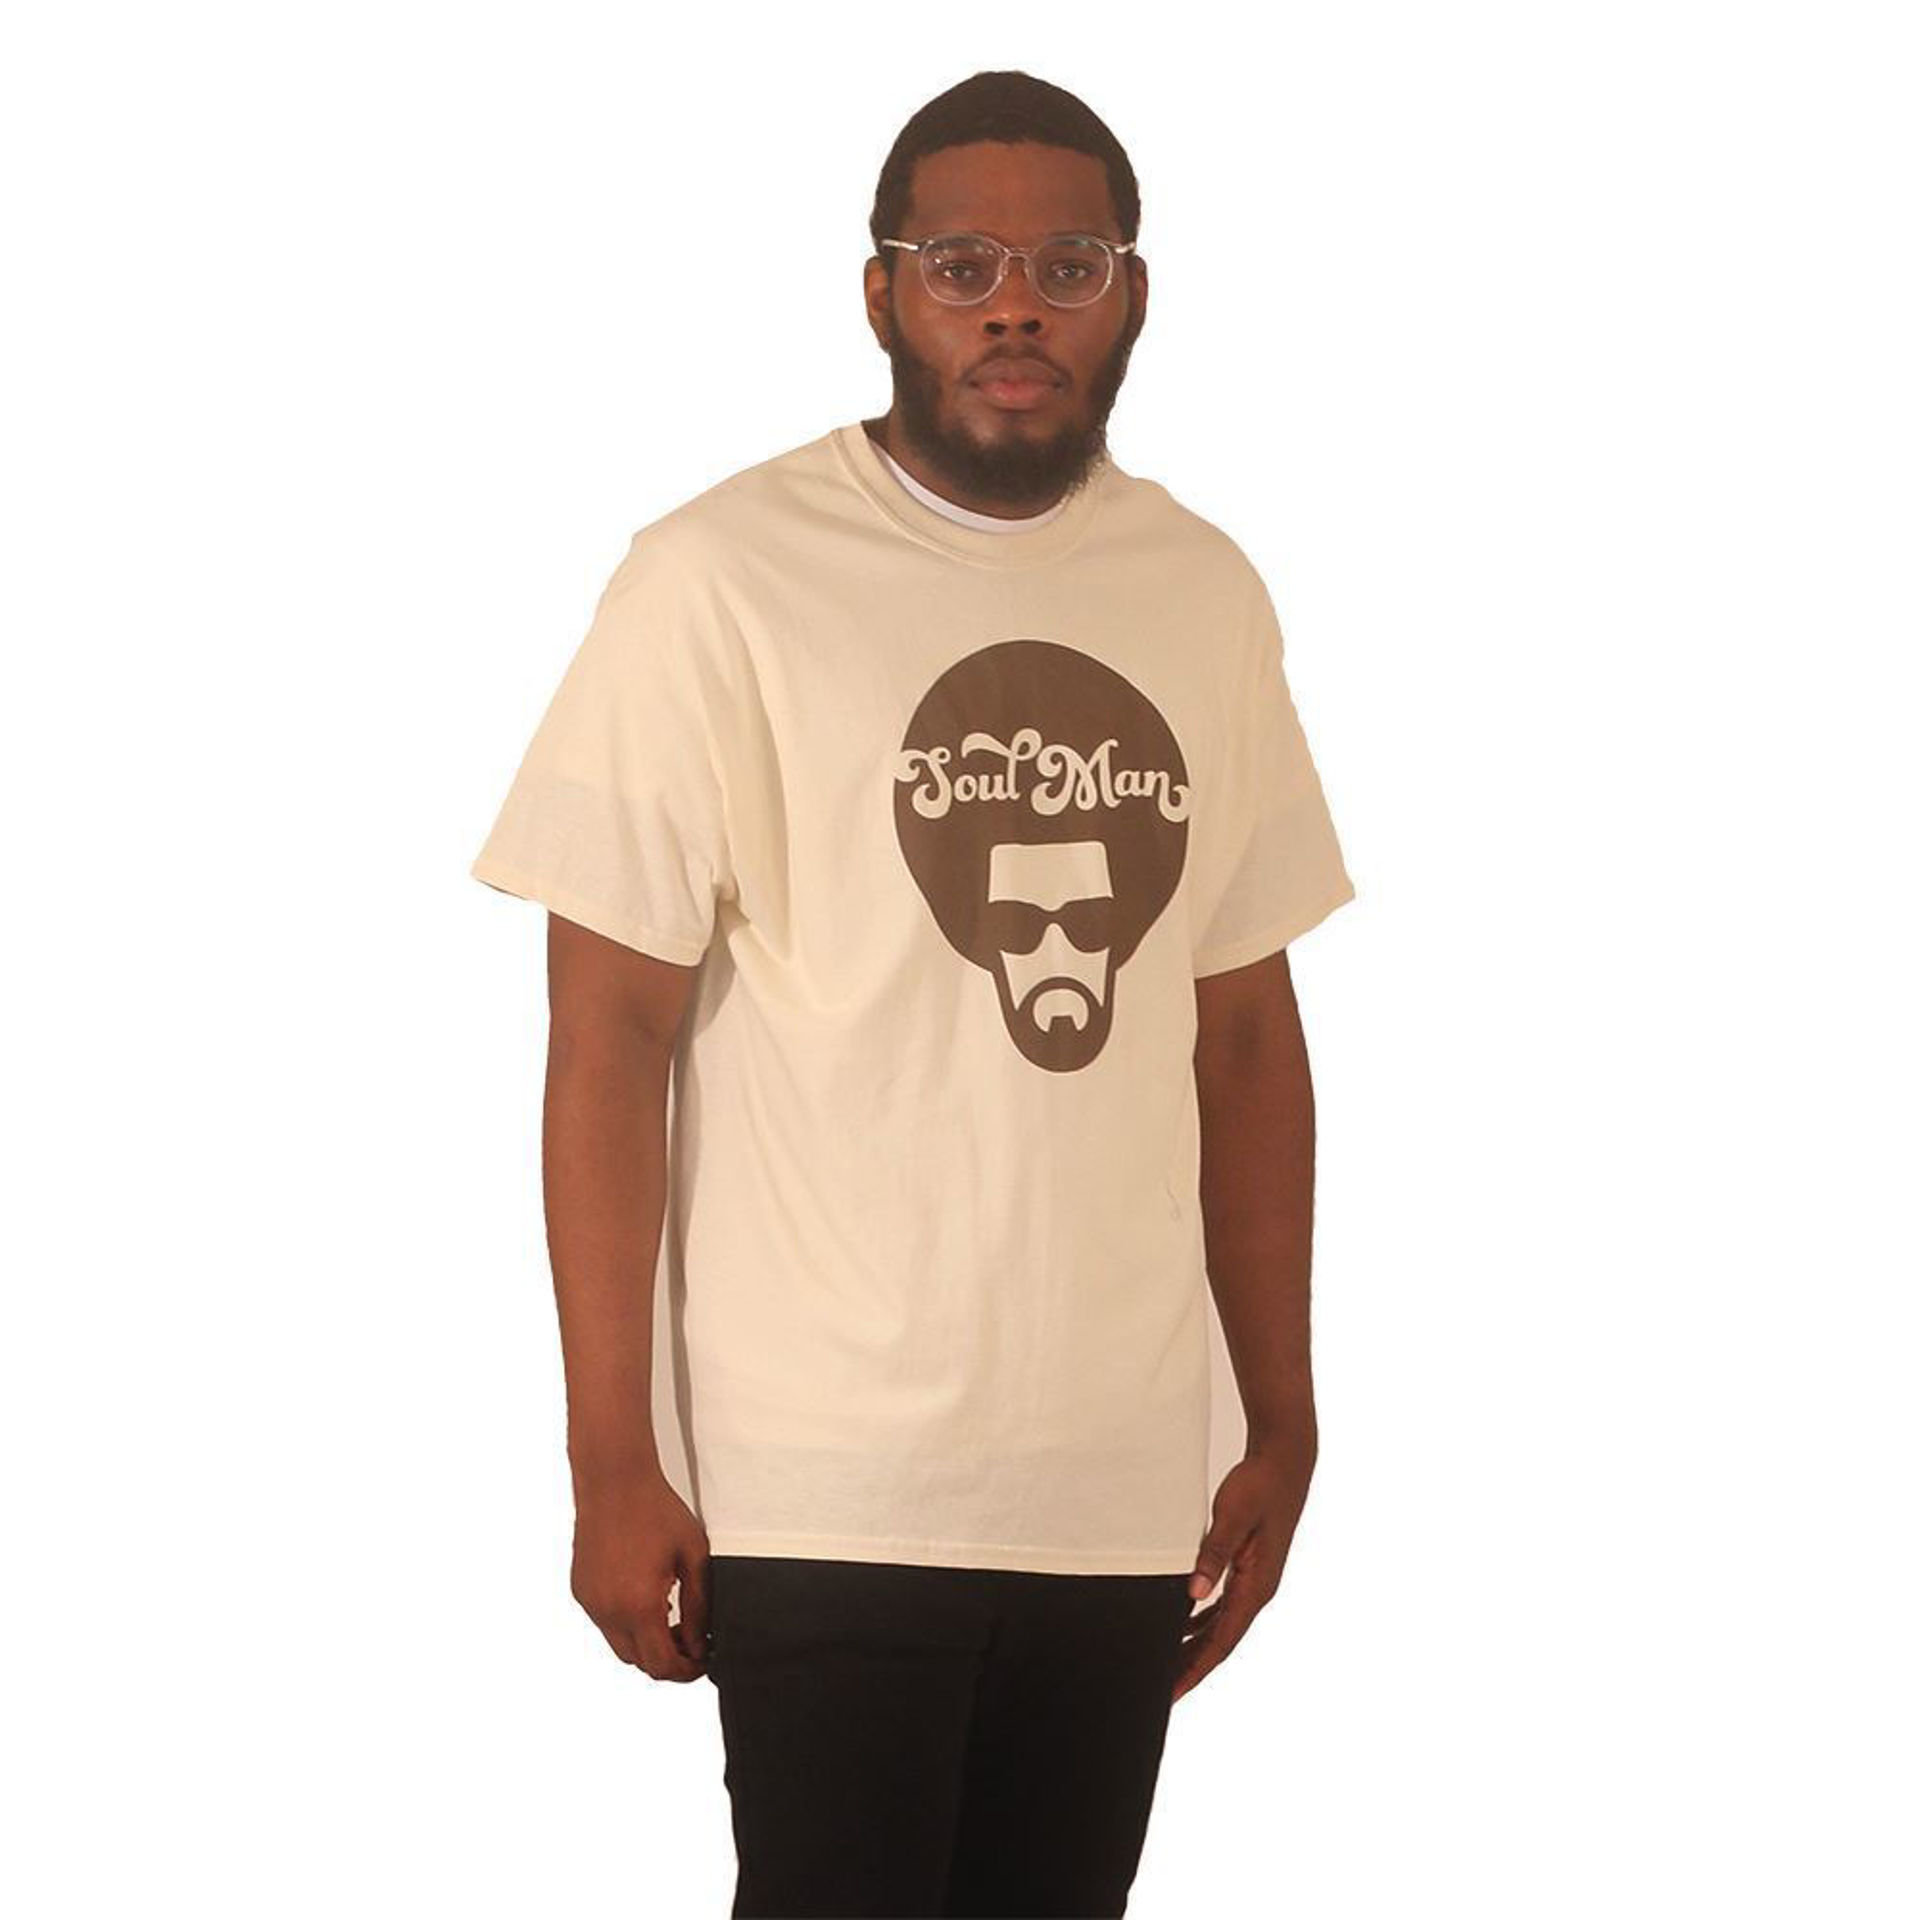 Picture of Soul Man T-Shirt